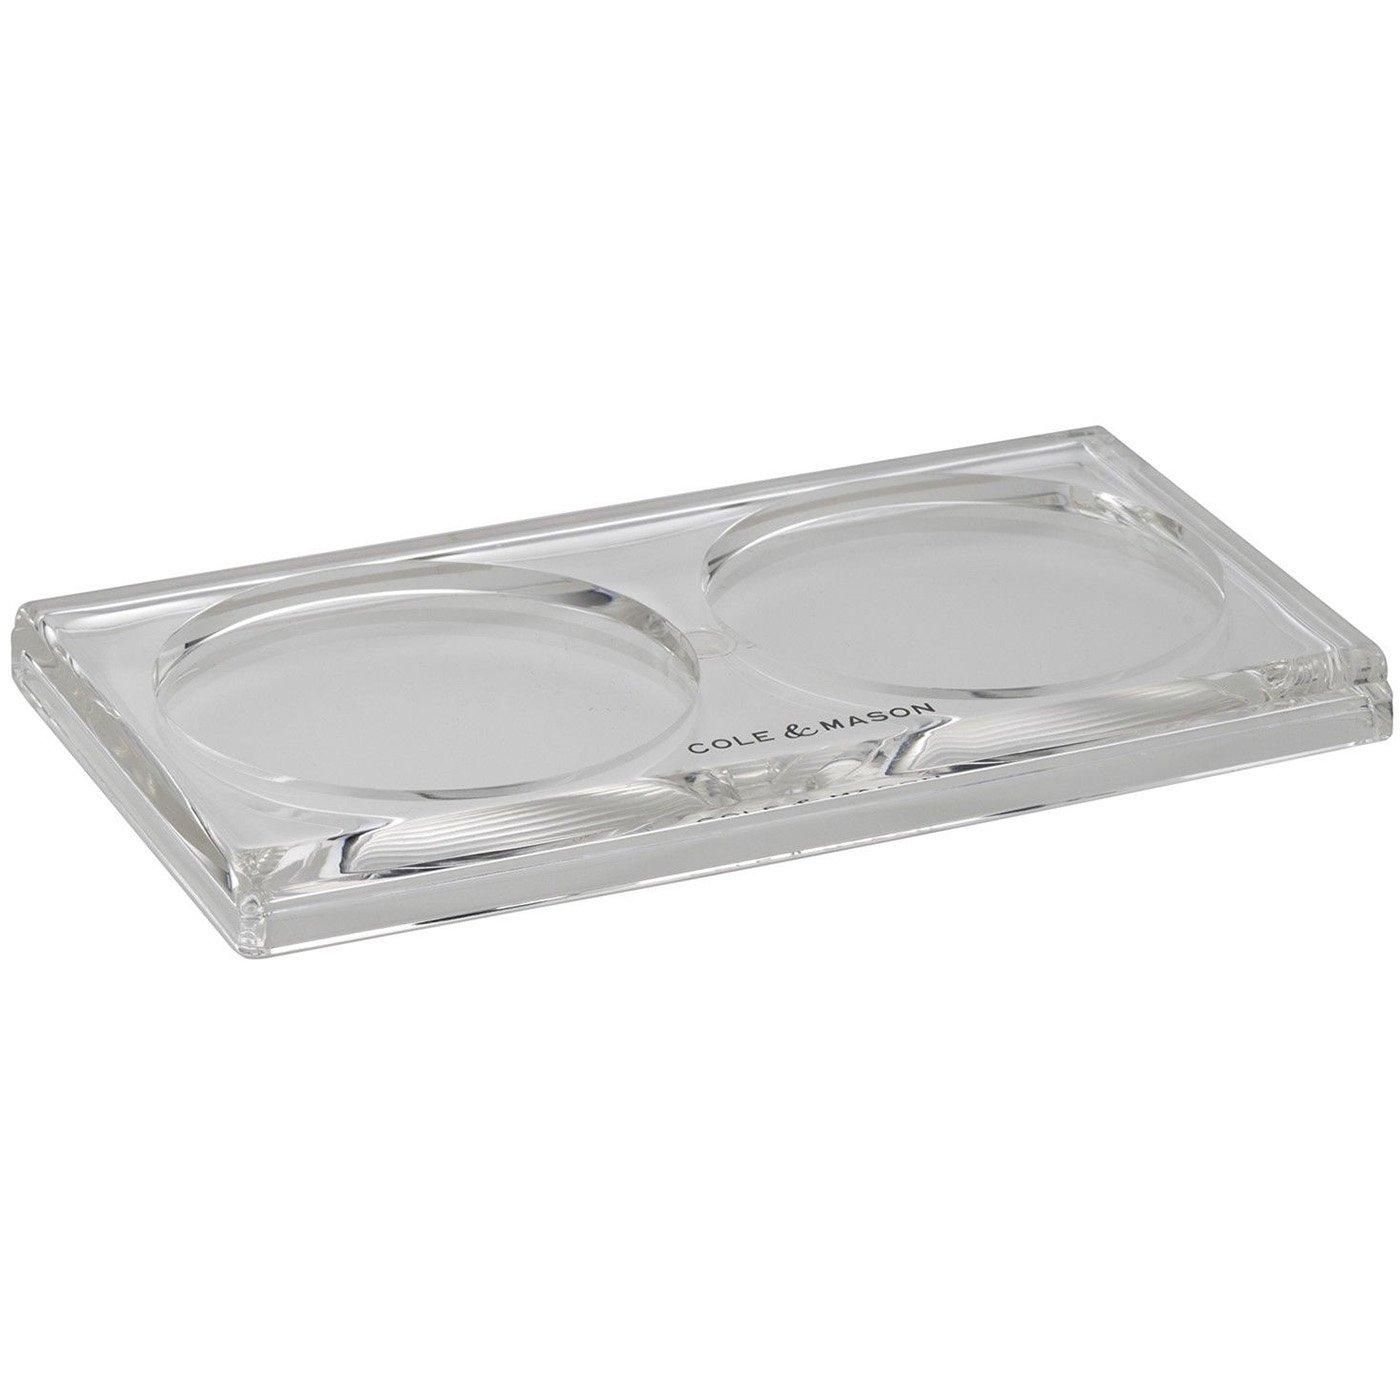 Cole & Mason Accessories Salt and Pepper Mill Tray, Acrylic, Clear, 17 x 9.6 x 0.8 cm DKB Household H306119